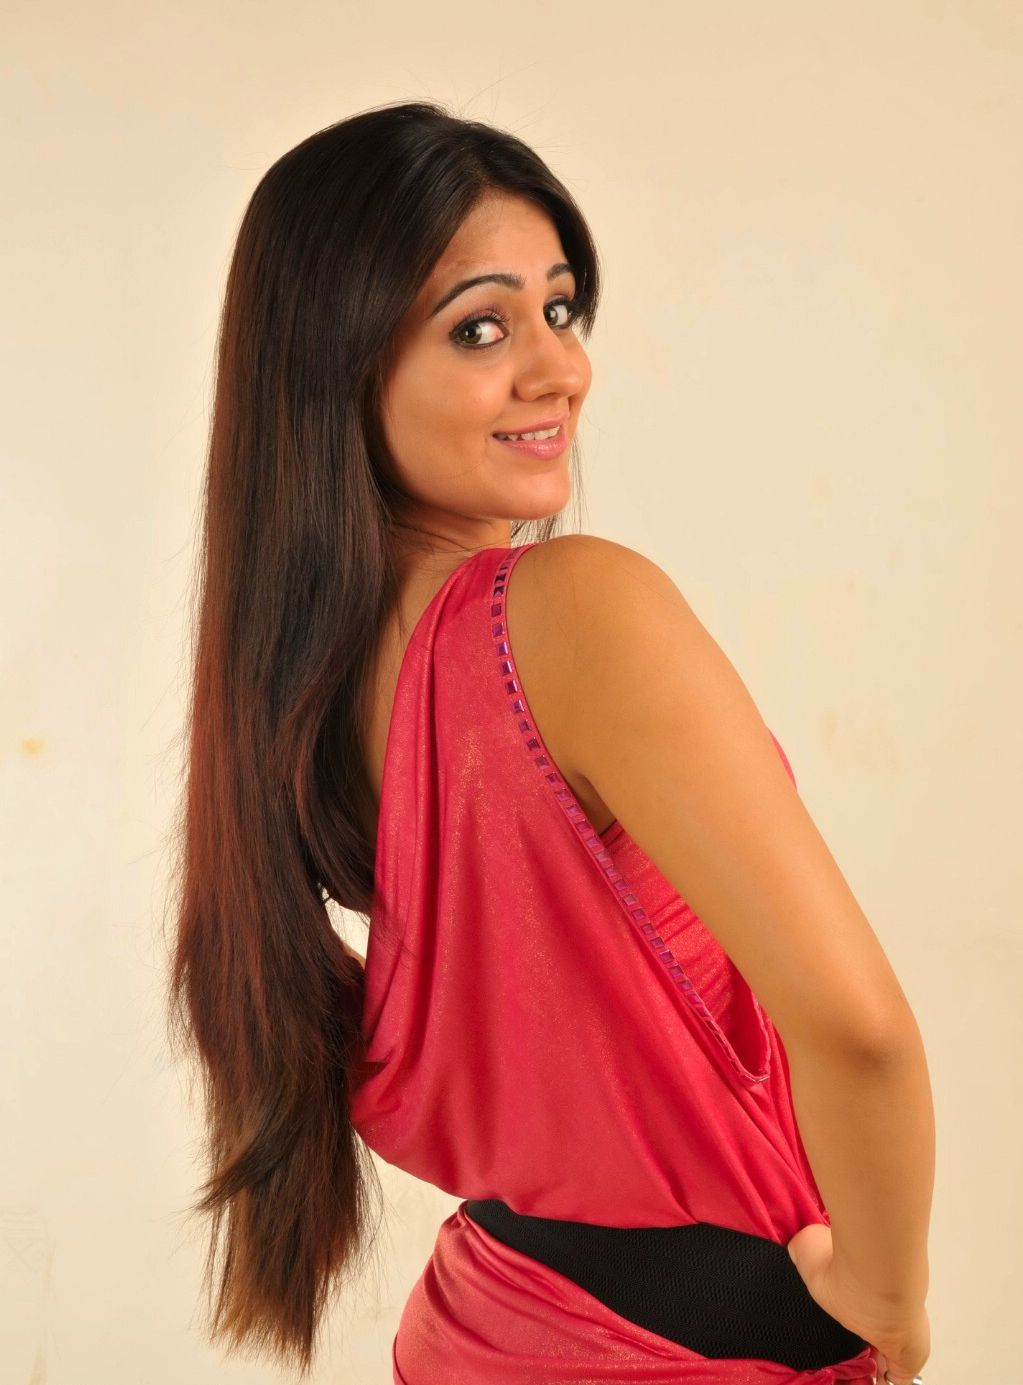 Tollywood%2BActress%2BAksha%2Bsexy%2Bin%2BRed%2BDress petite teen girl teasing in pics and flv movie